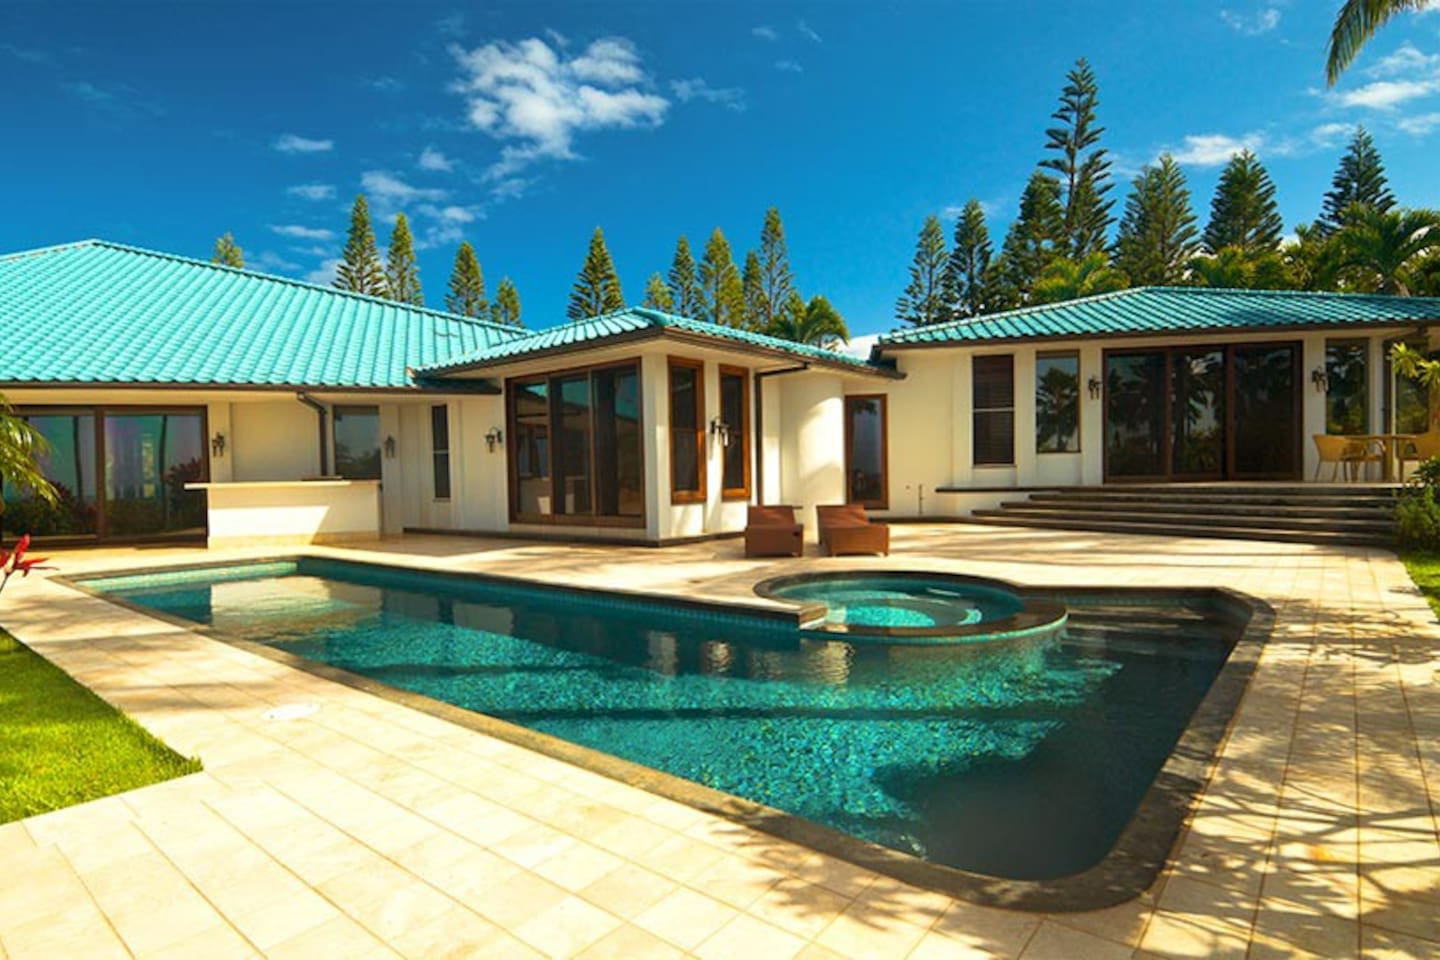 Luxury Kauai Hawaii Vacation Home